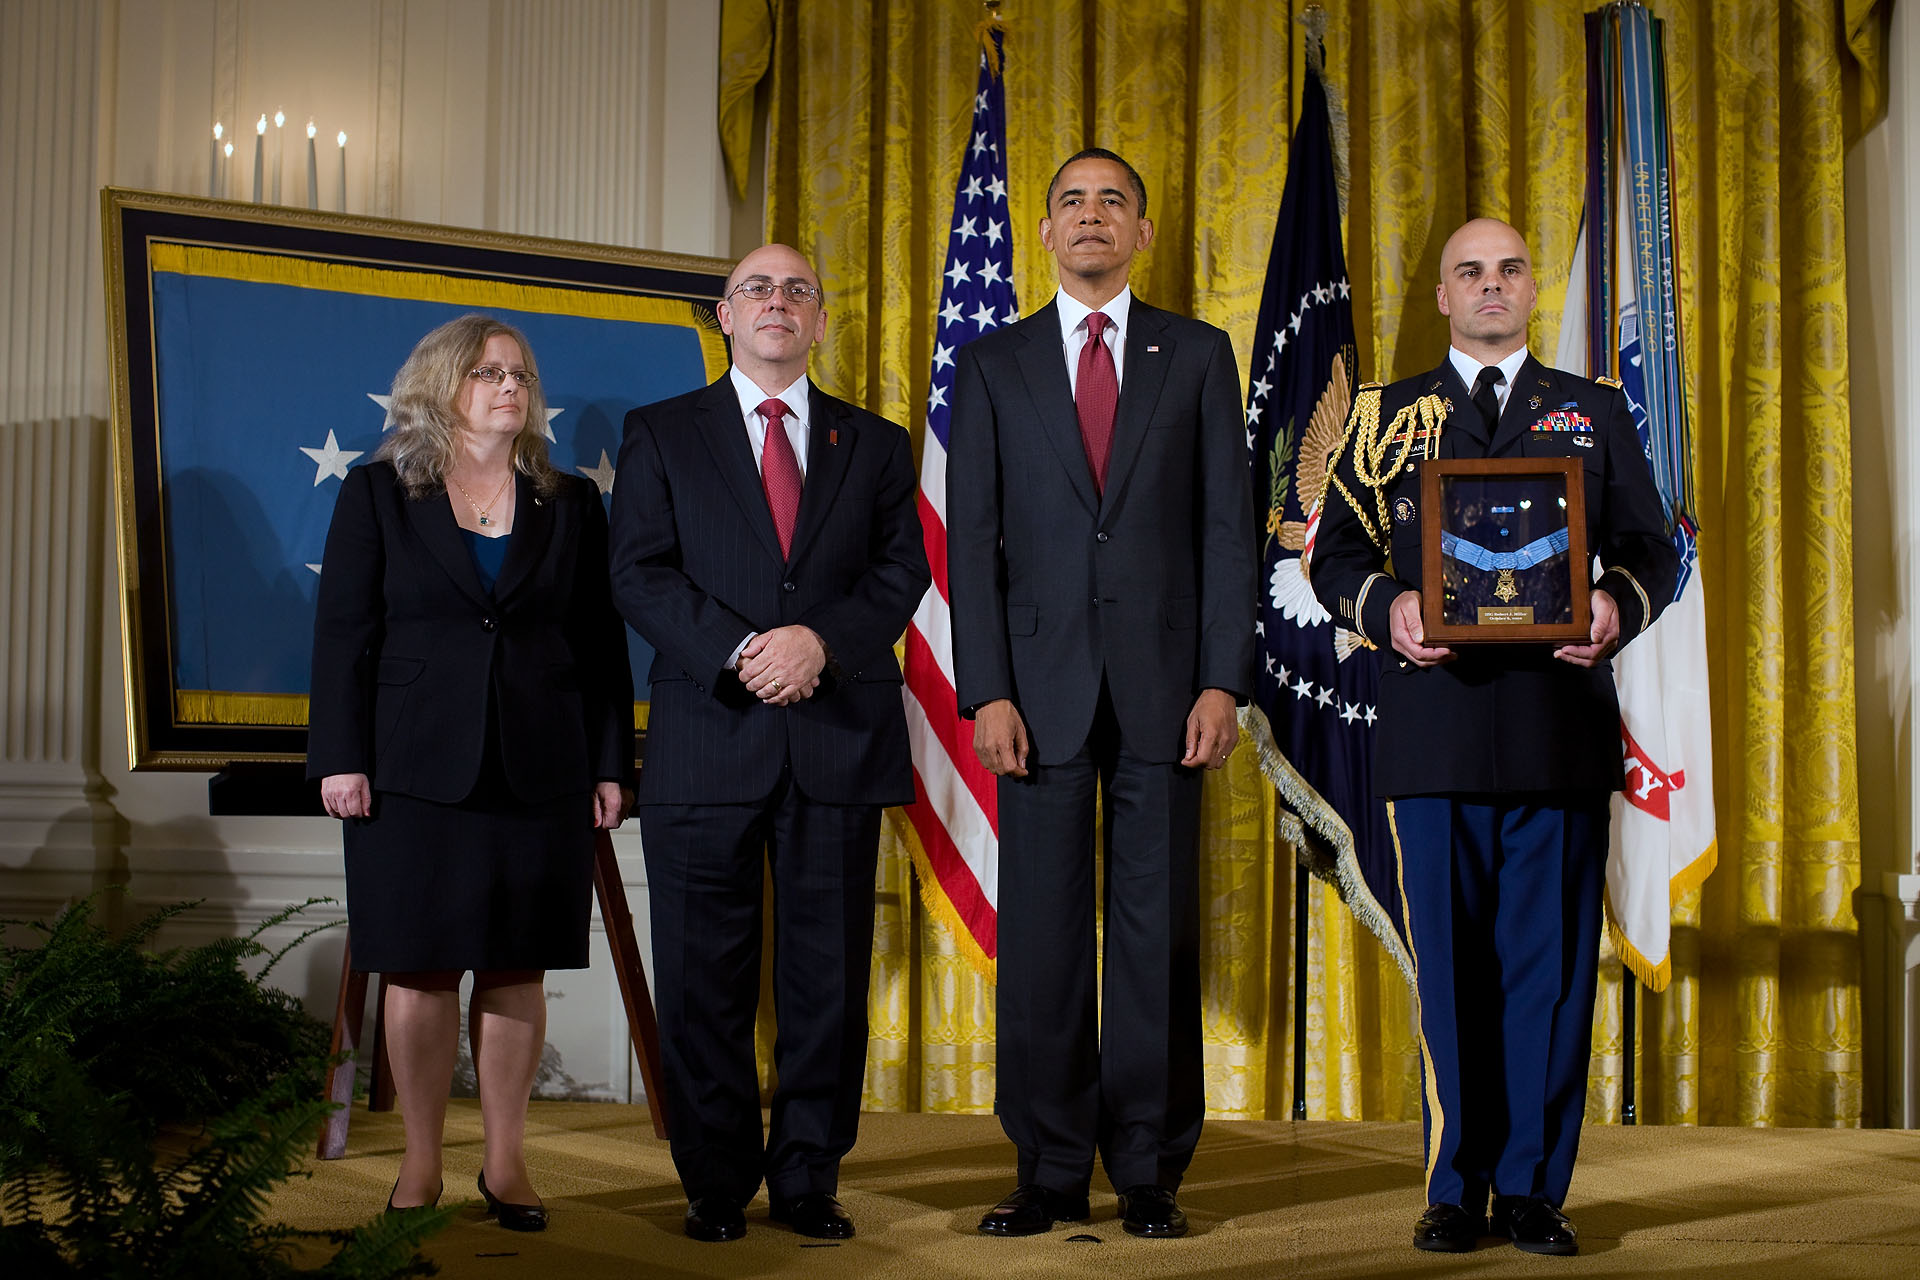 President Barack Obama Stands with Phil and Maureen Miller, Parents of Staff Sergeant Robert J. Miller, as the Medal of Honor is Awarded Posthumously to their Son